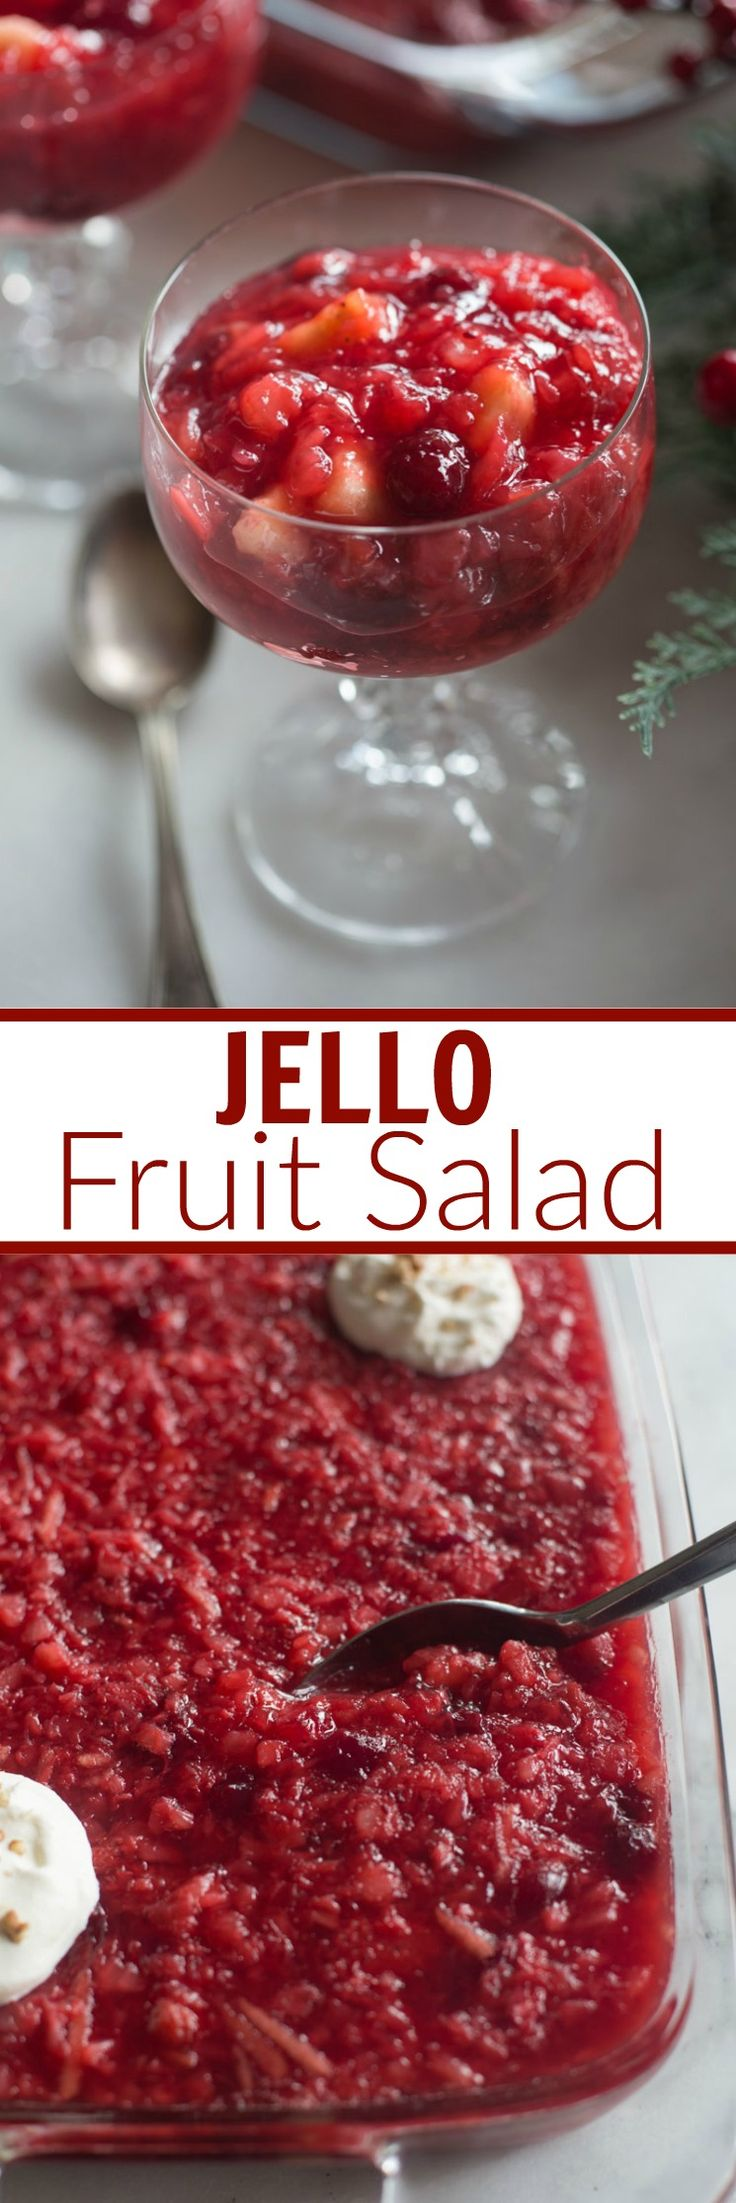 jello with fruit cocktail recipe